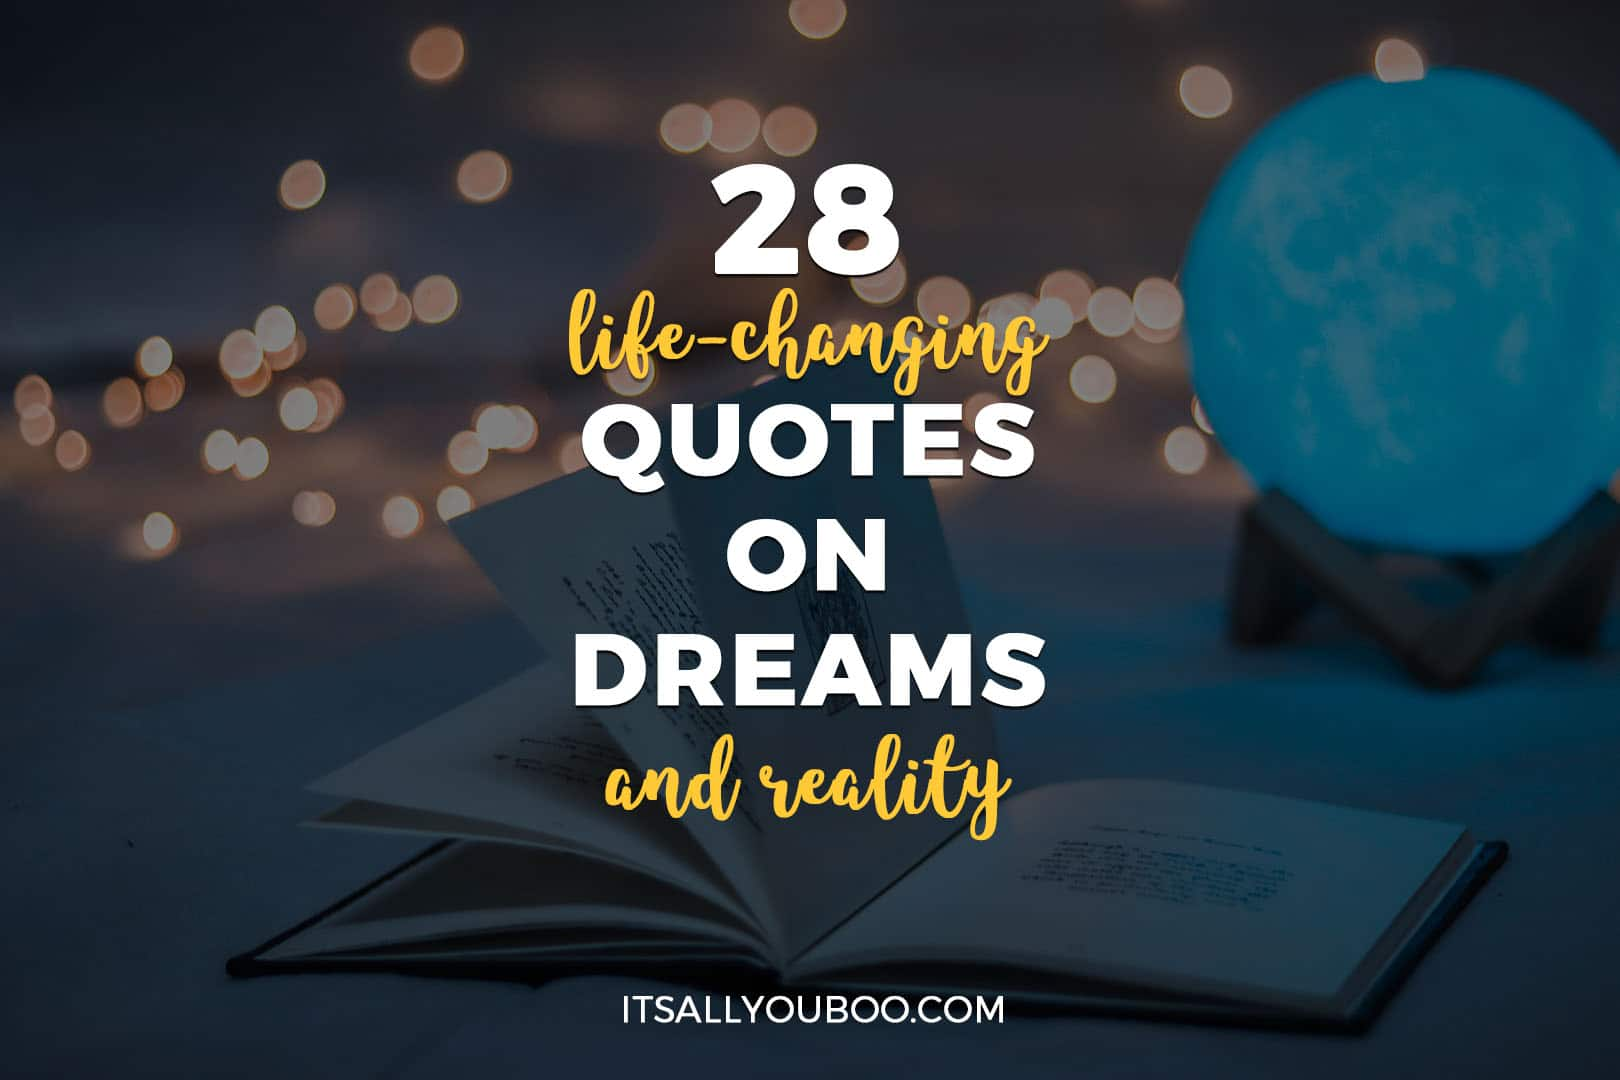 28 Life-Changing Quotes on Dreams and Reality